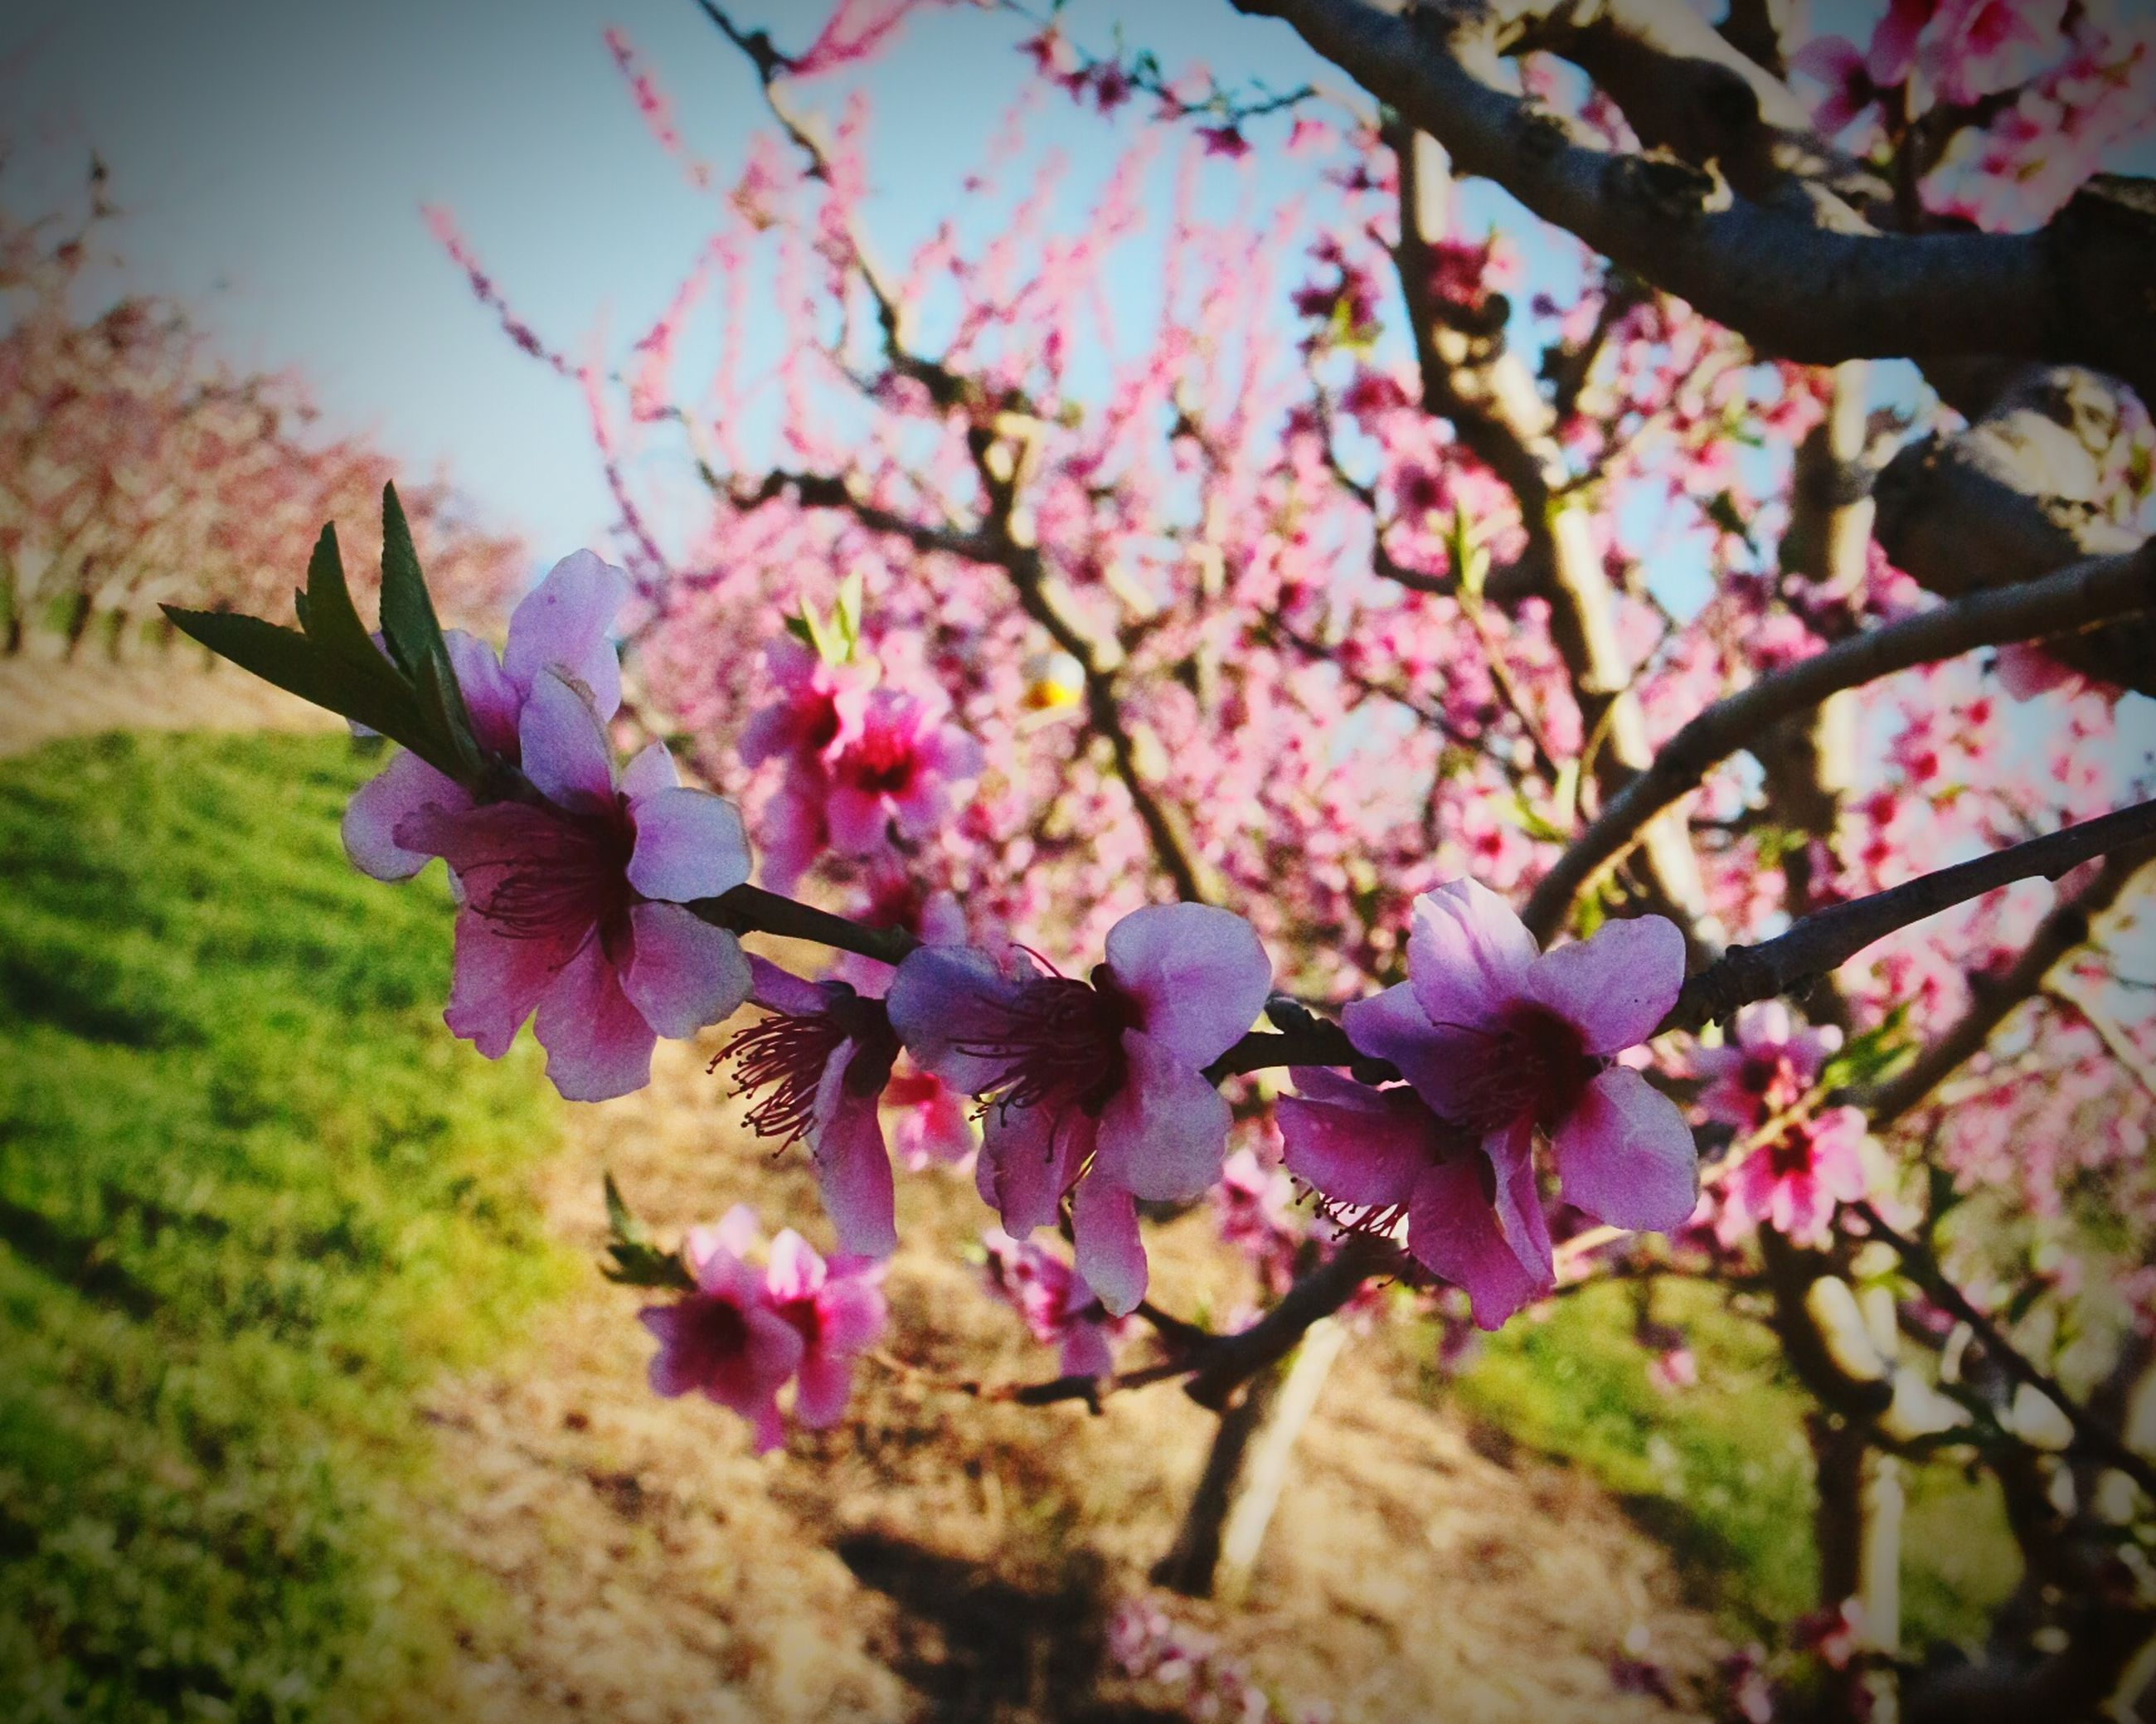 flower, freshness, growth, fragility, beauty in nature, pink color, branch, nature, blossom, petal, tree, blooming, focus on foreground, purple, in bloom, close-up, springtime, flower head, day, plant